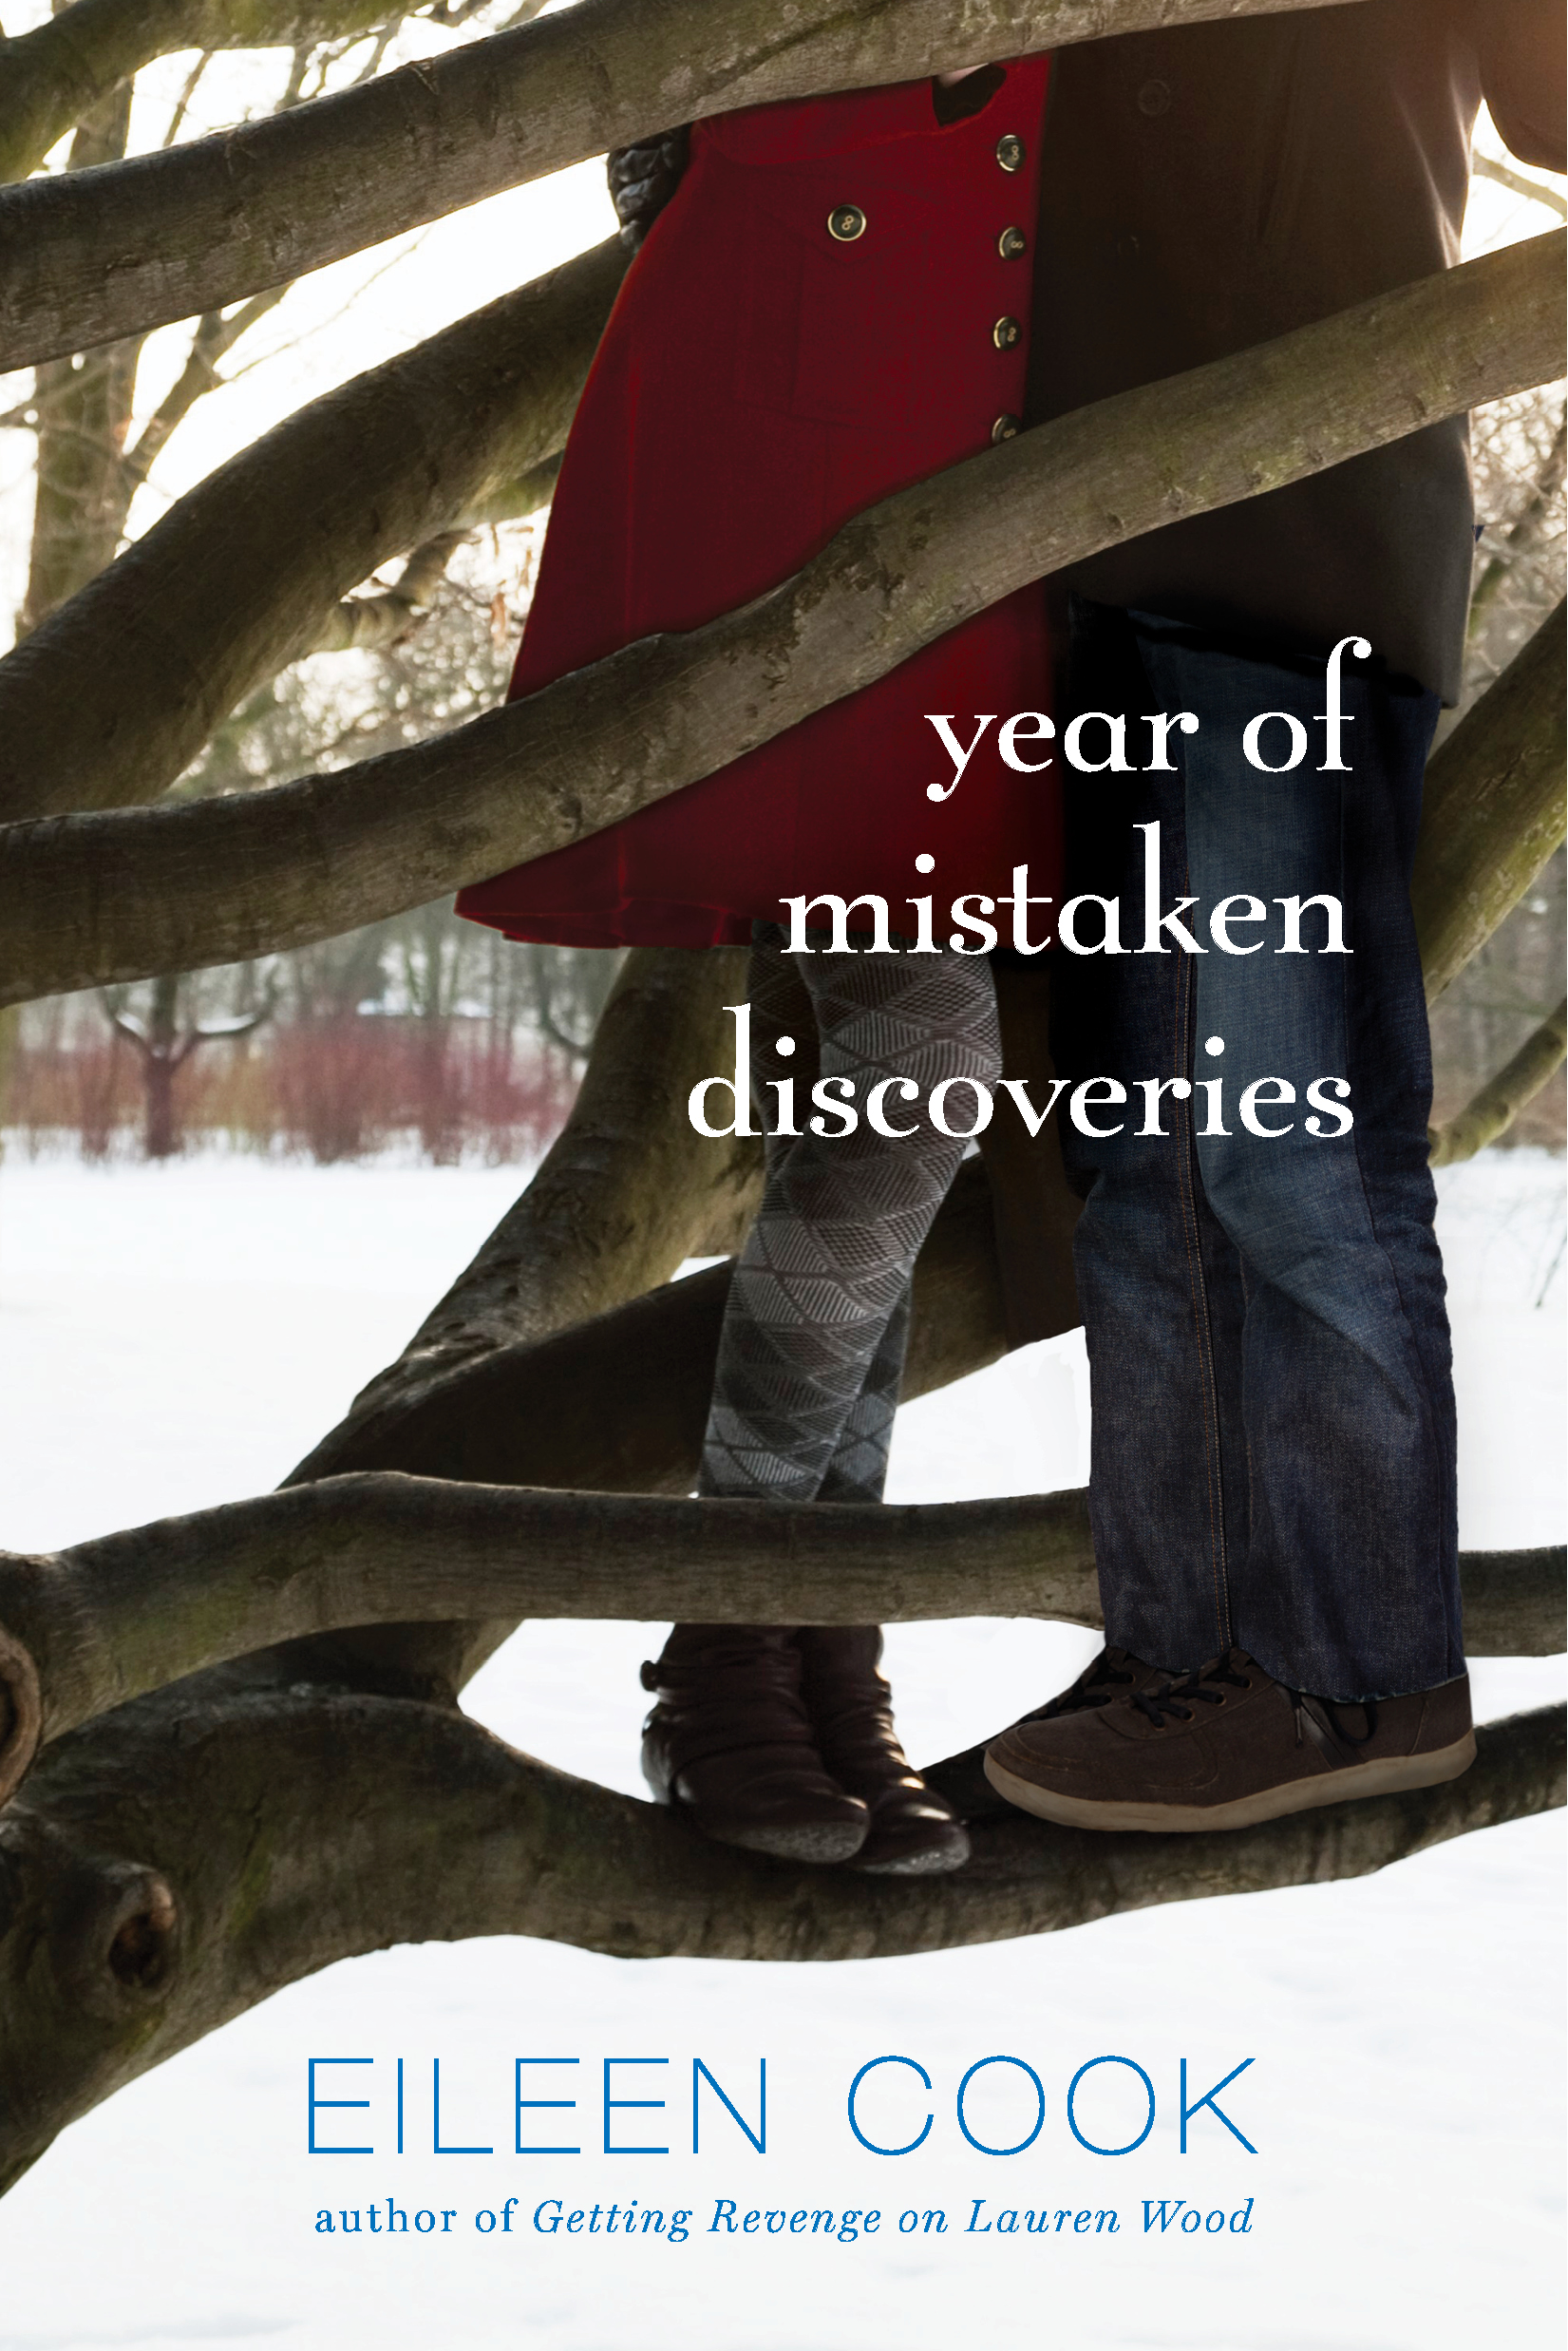 Year of mistaken discoveries 9781442440227 hr